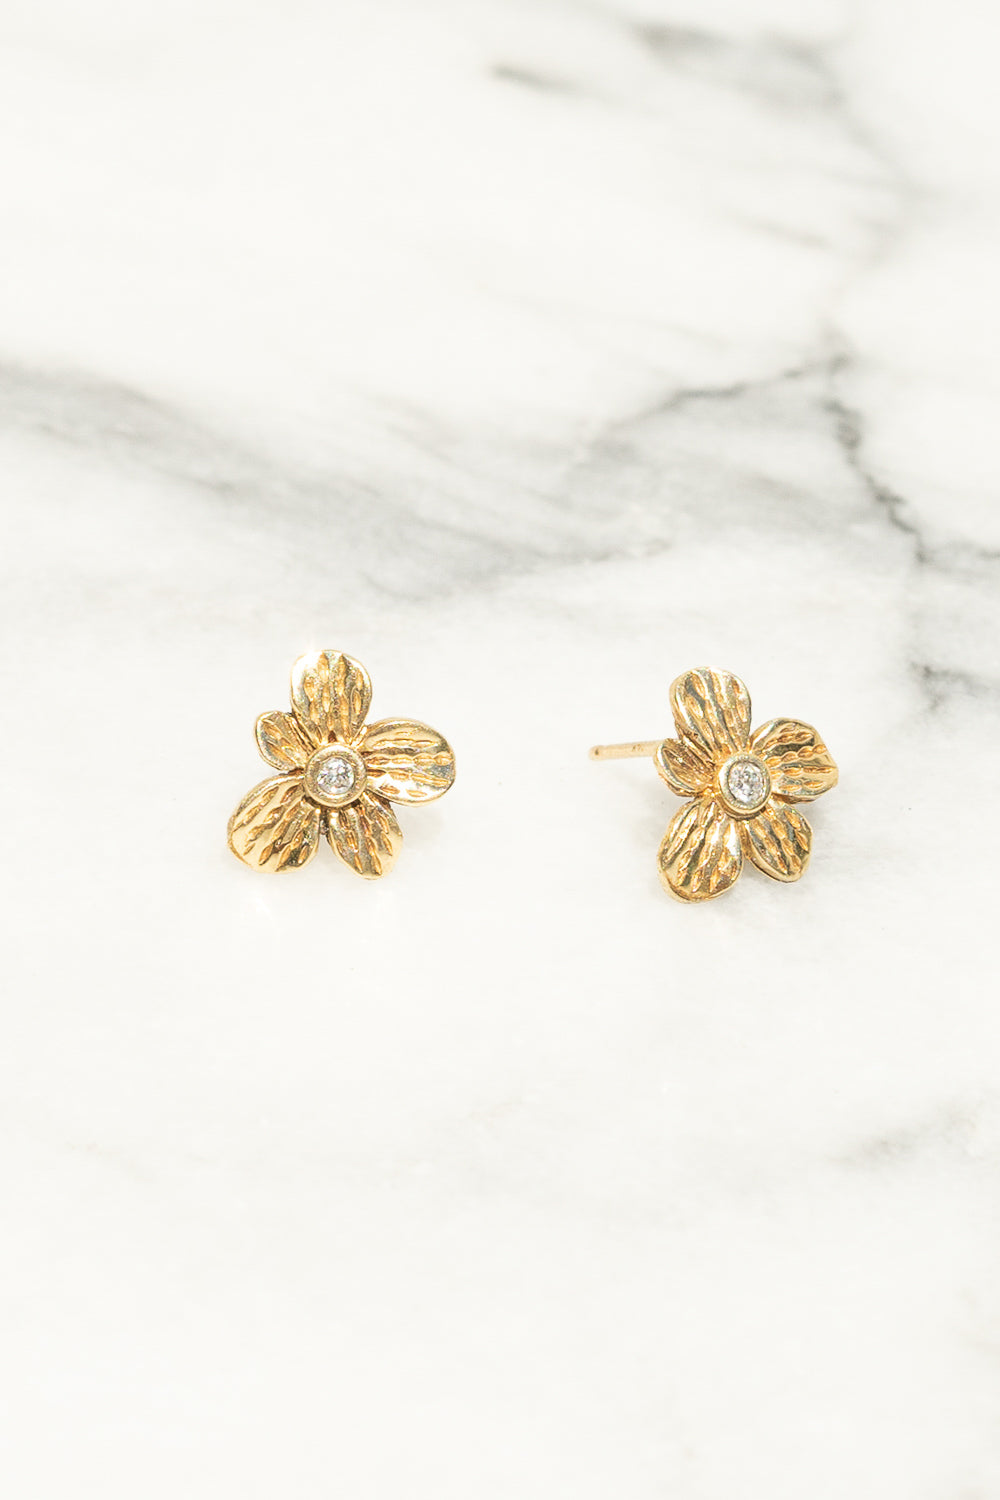 gold flower earrings diamond center